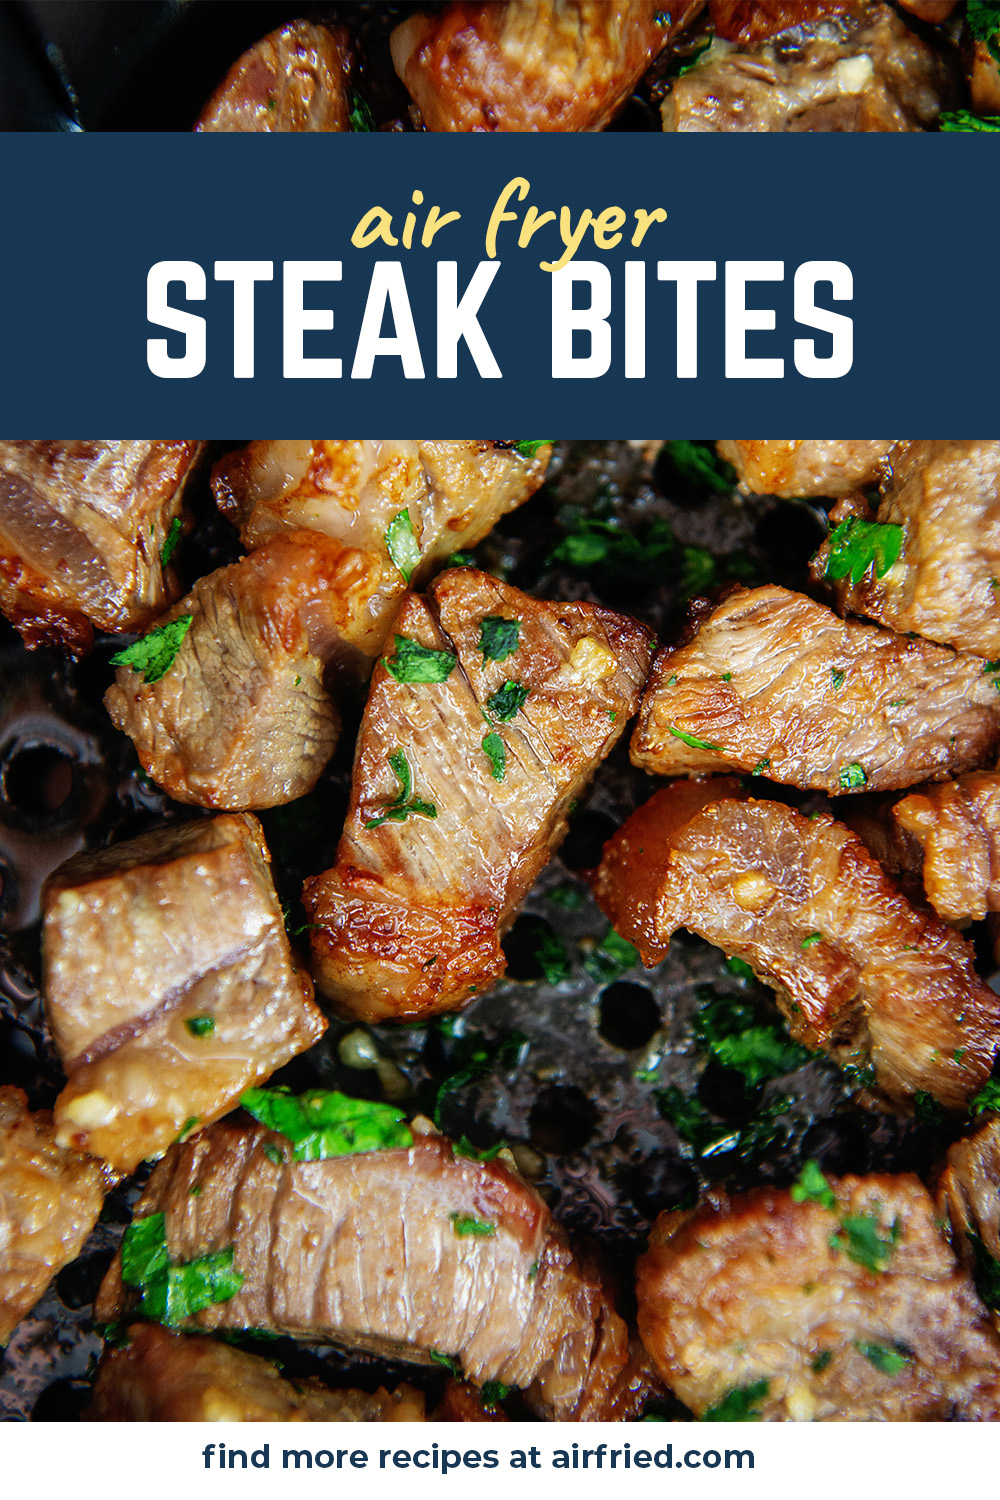 These steak bites  are well seasoned and perfectly cooked in the air fryer!